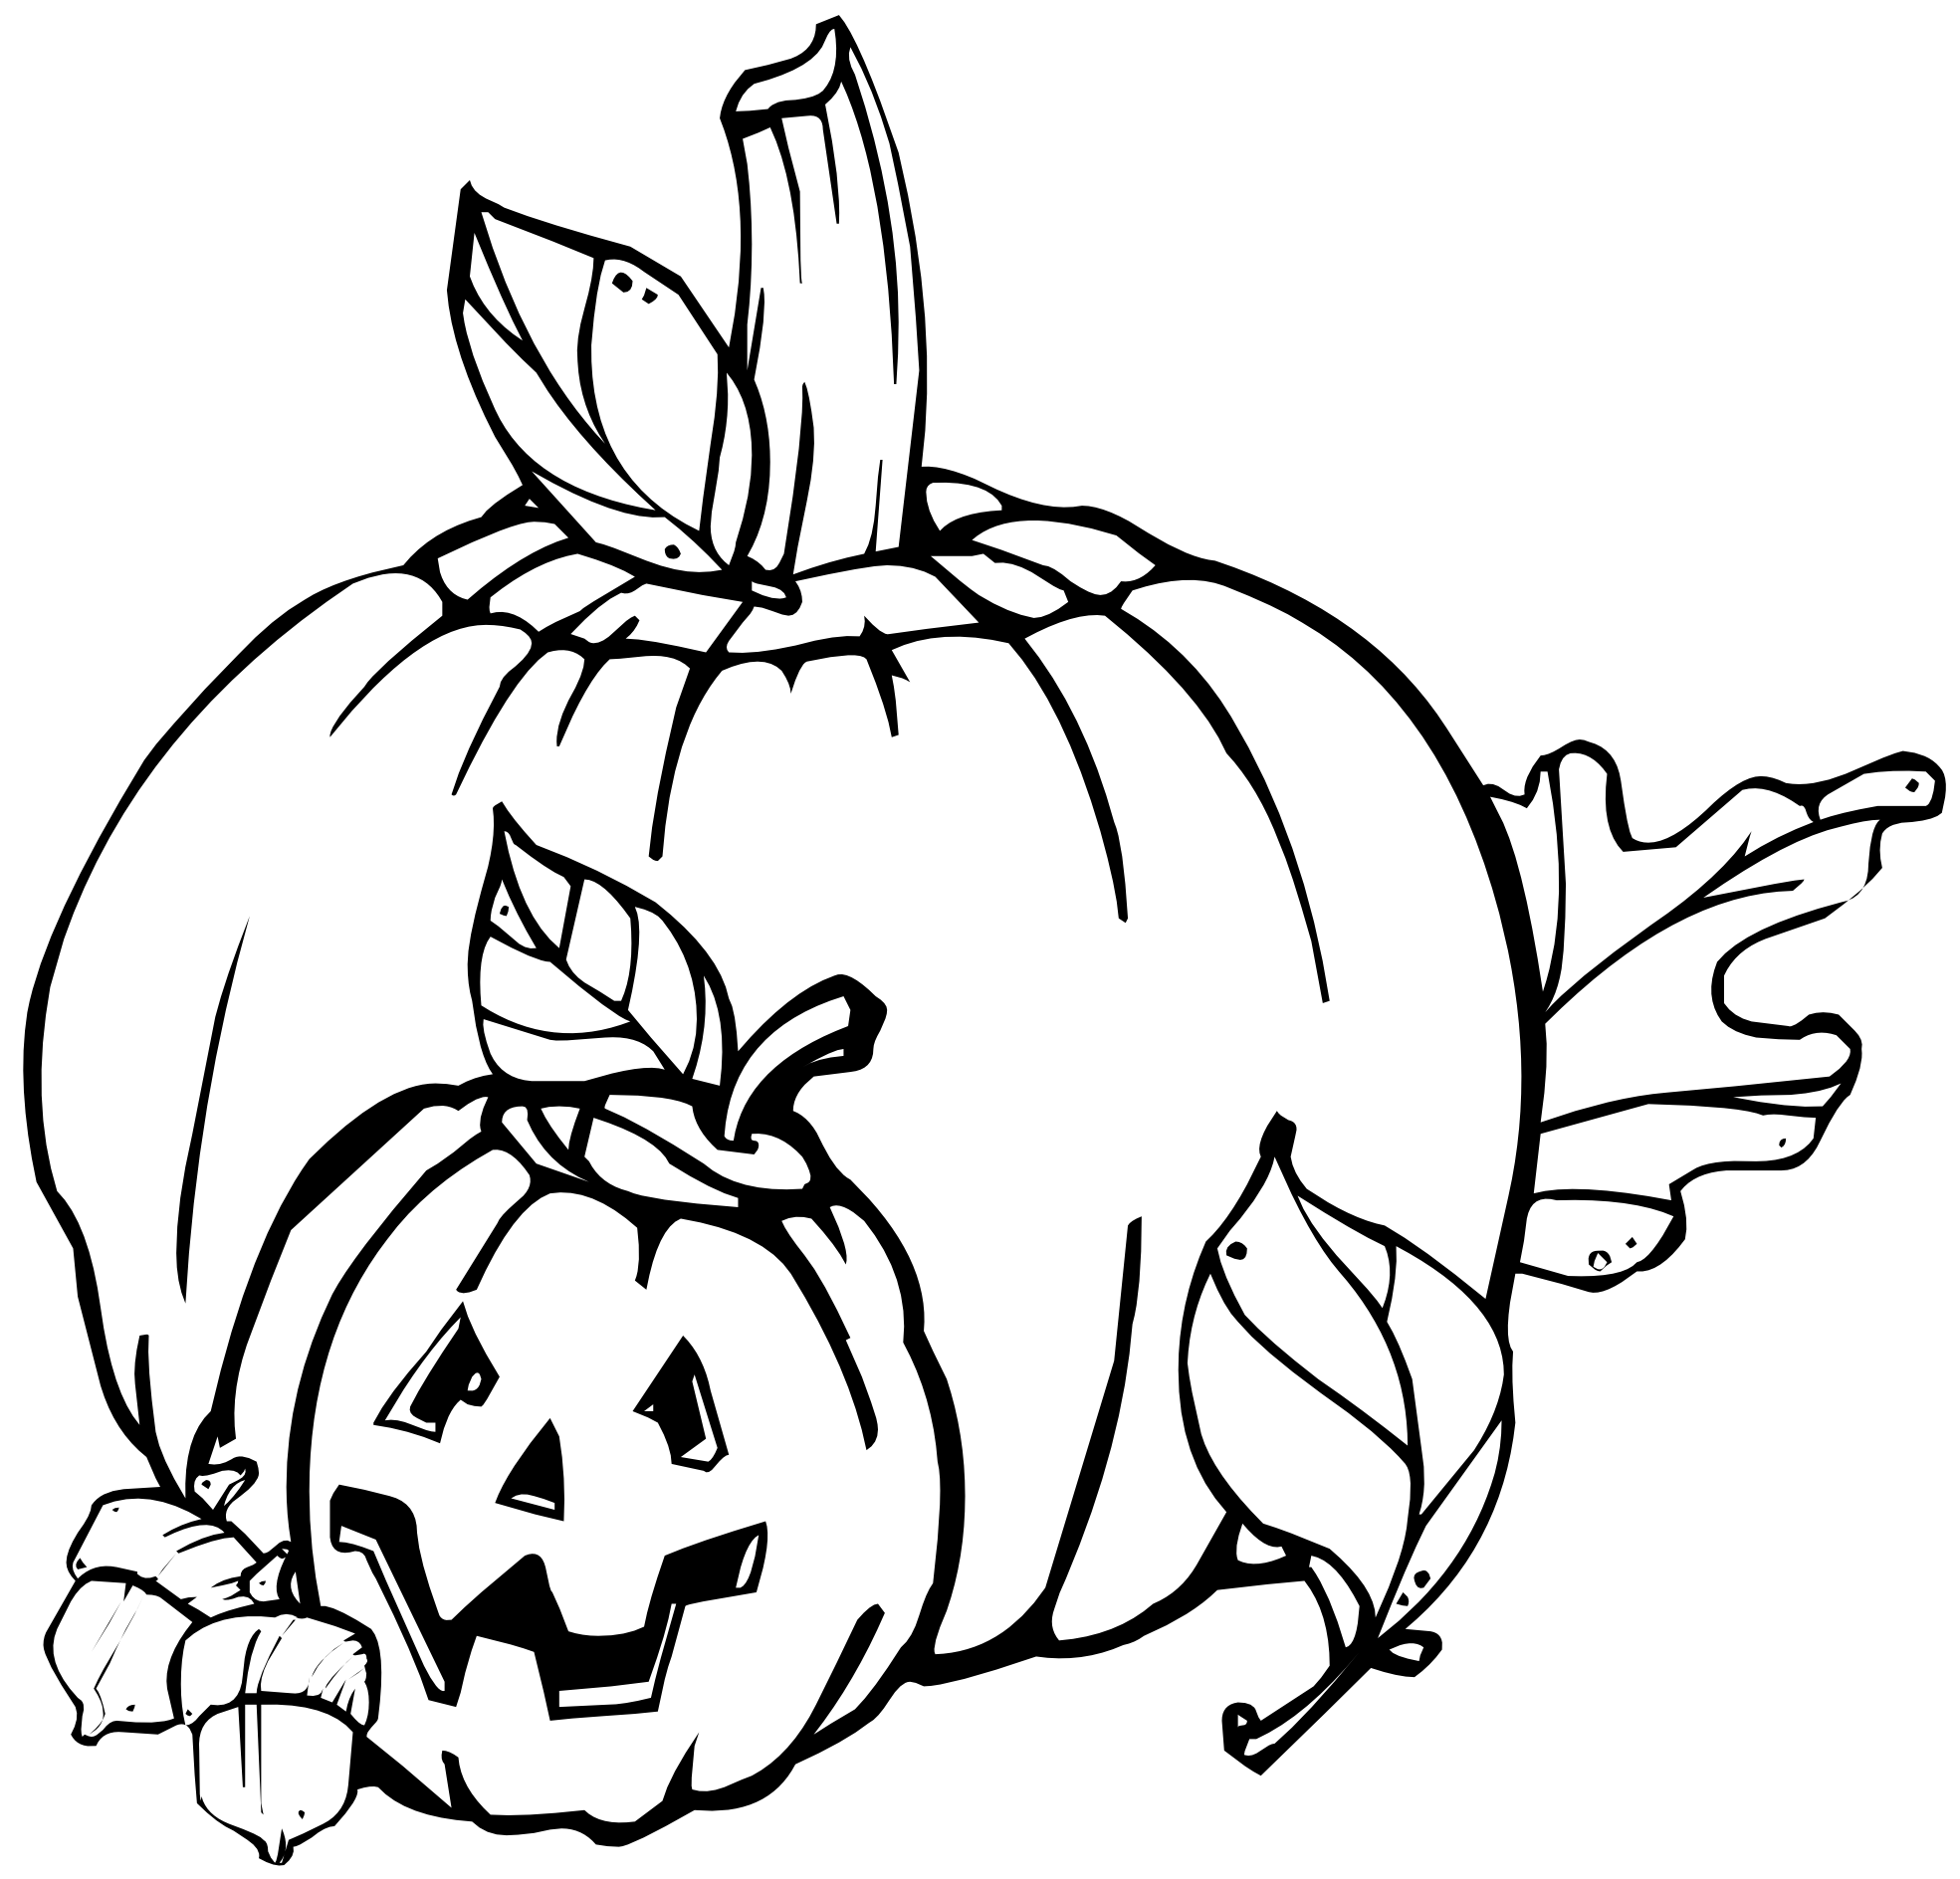 1969x1888 Pumpkin Black And White Clip Art